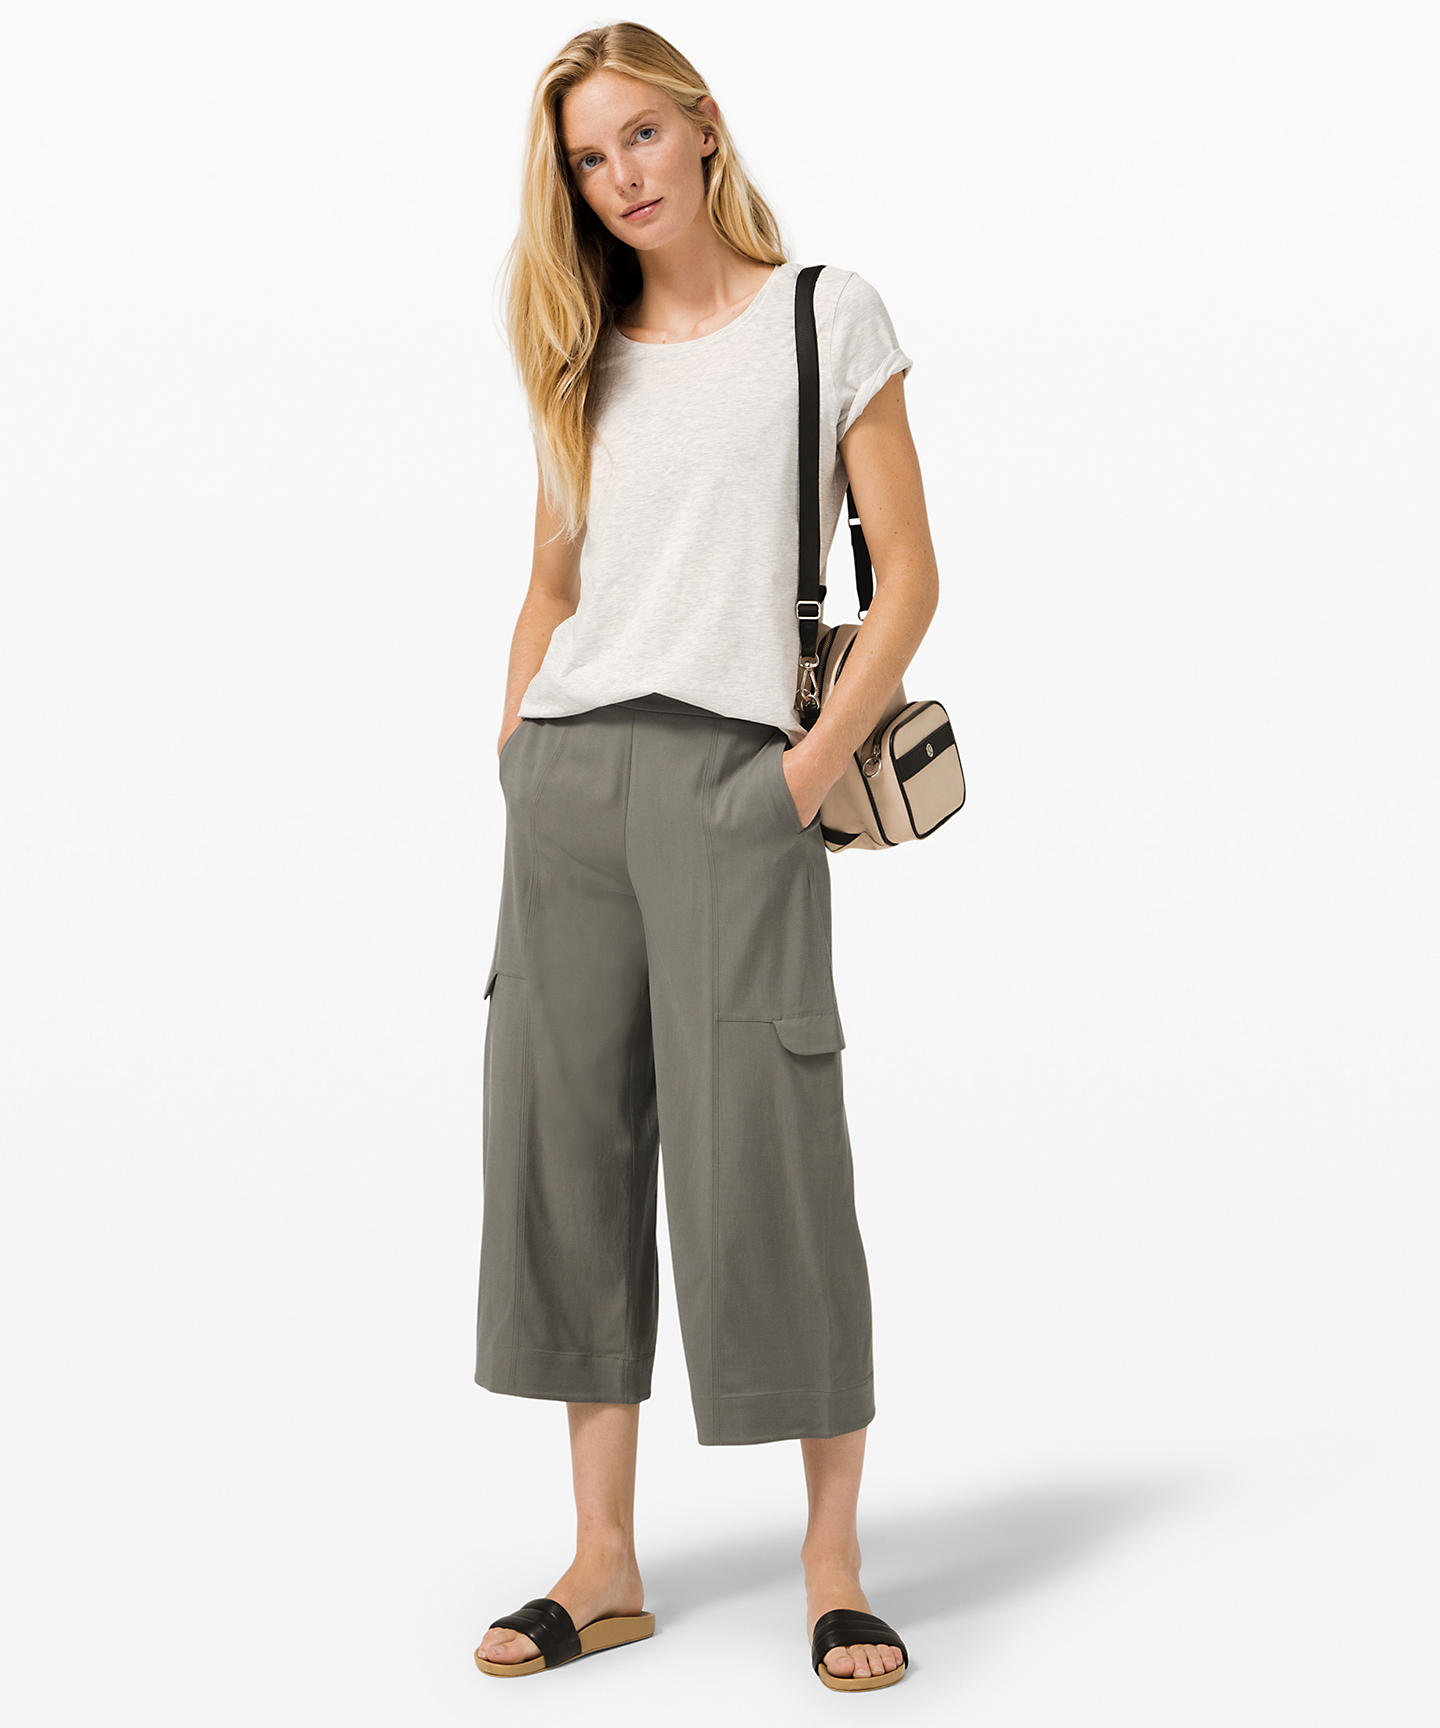 Lululemon: New styles added to sale (8/12)